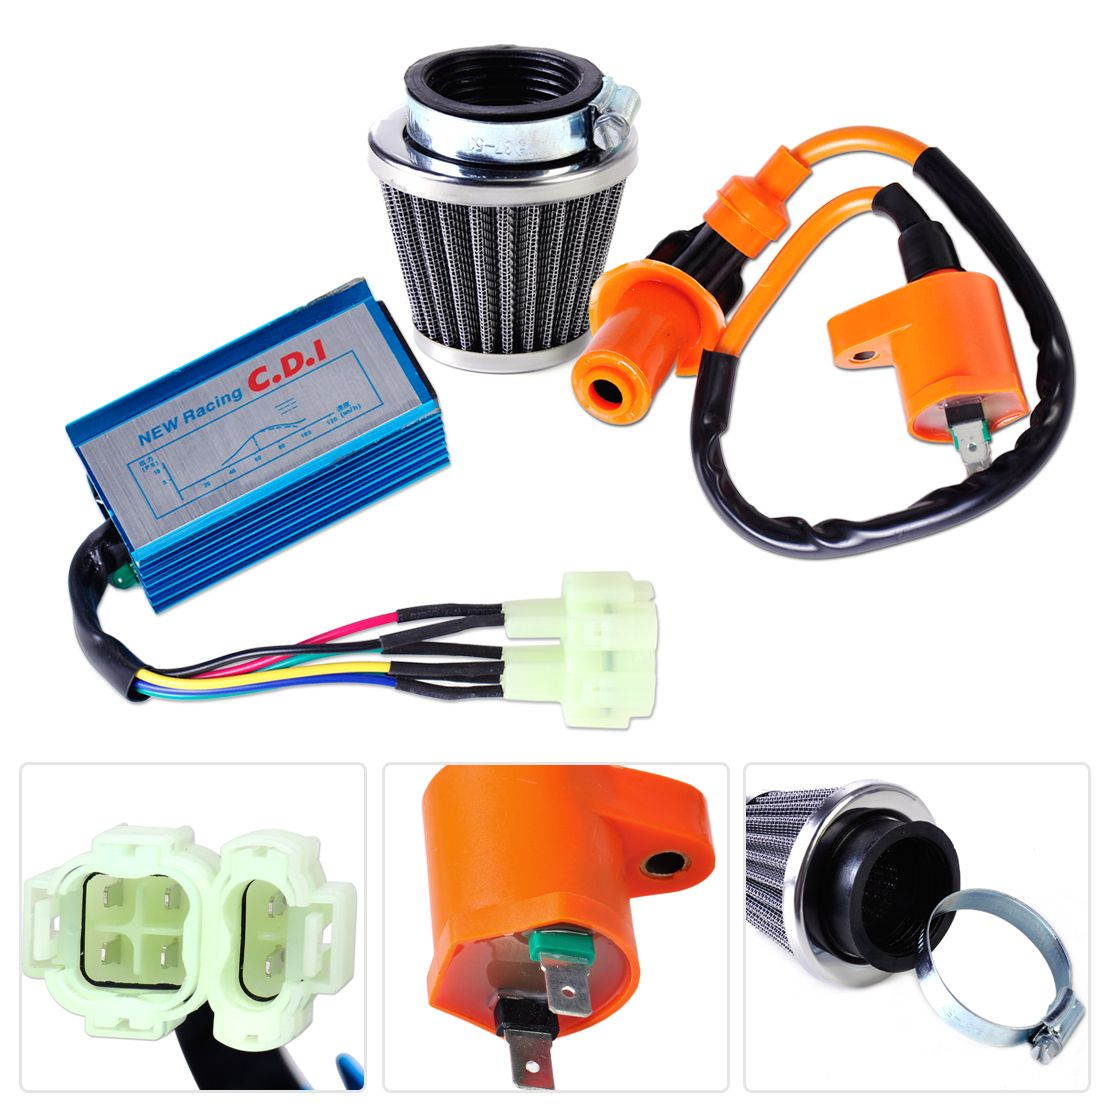 DWCX Motorcycle Racing Performance Ignition Coil +CDI Box + Air Filter Kit for GY6 50cc 150cc Scooter Moped Go Kart Dirt bike